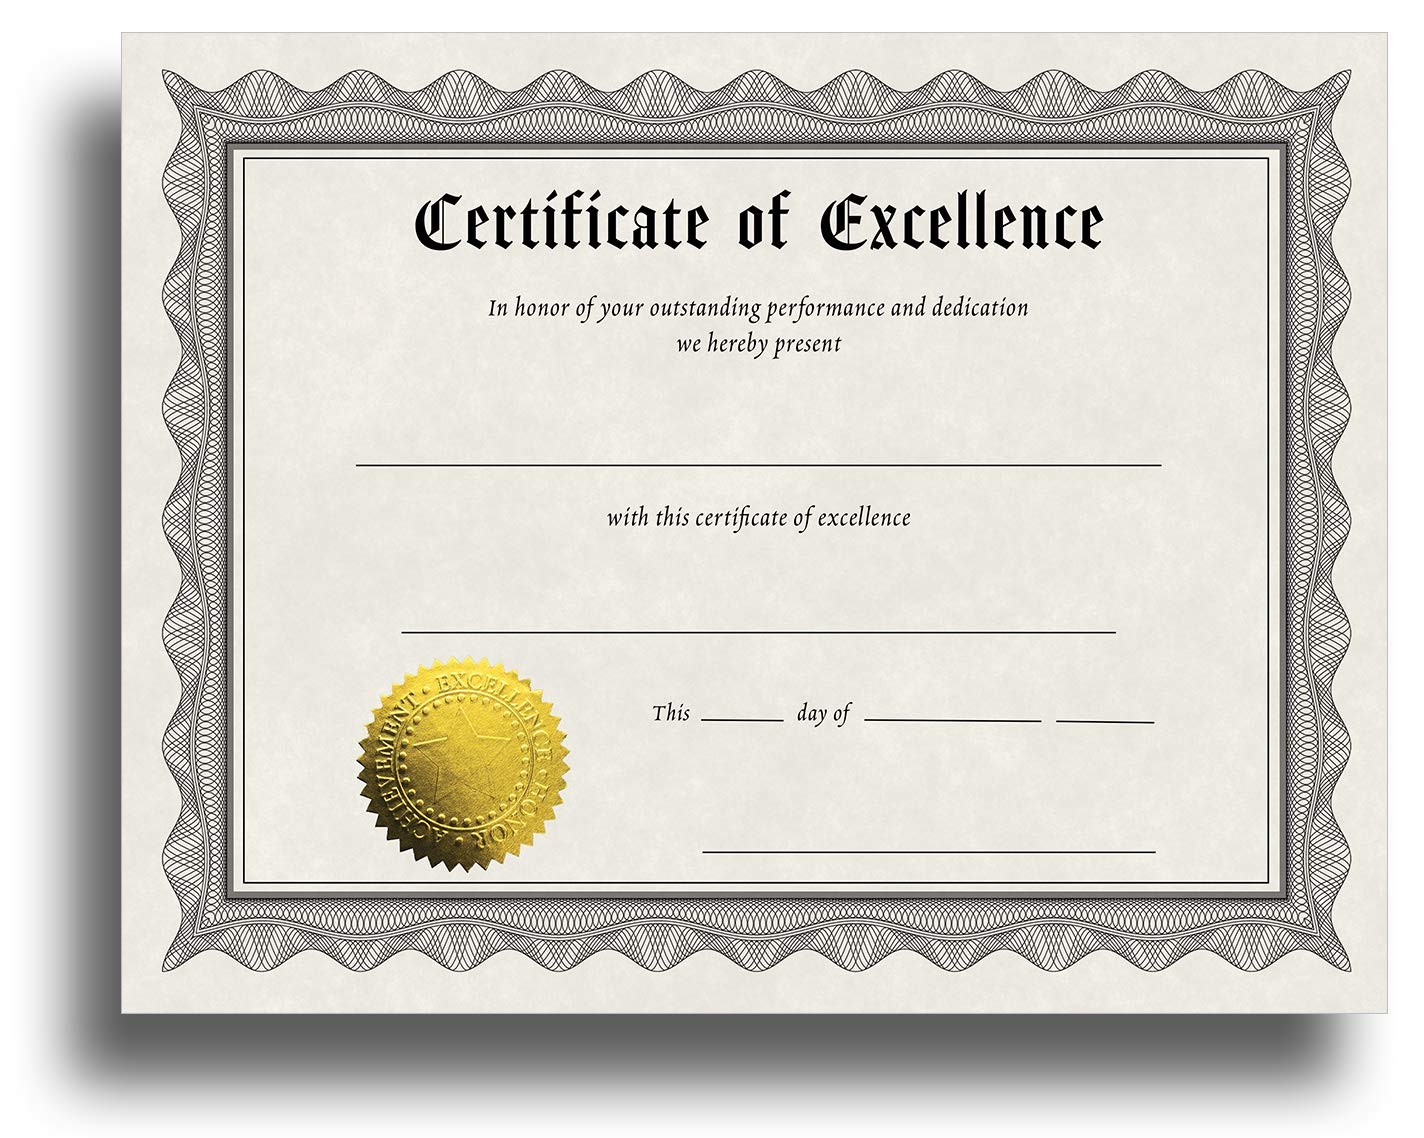 Certificate of Excellence Certificate Paper with Embossed Gold Foil Seals -  24 Pack - Parchment Award Certificates for Students, Teachers, Employees - In Award Of Excellence Certificate Template